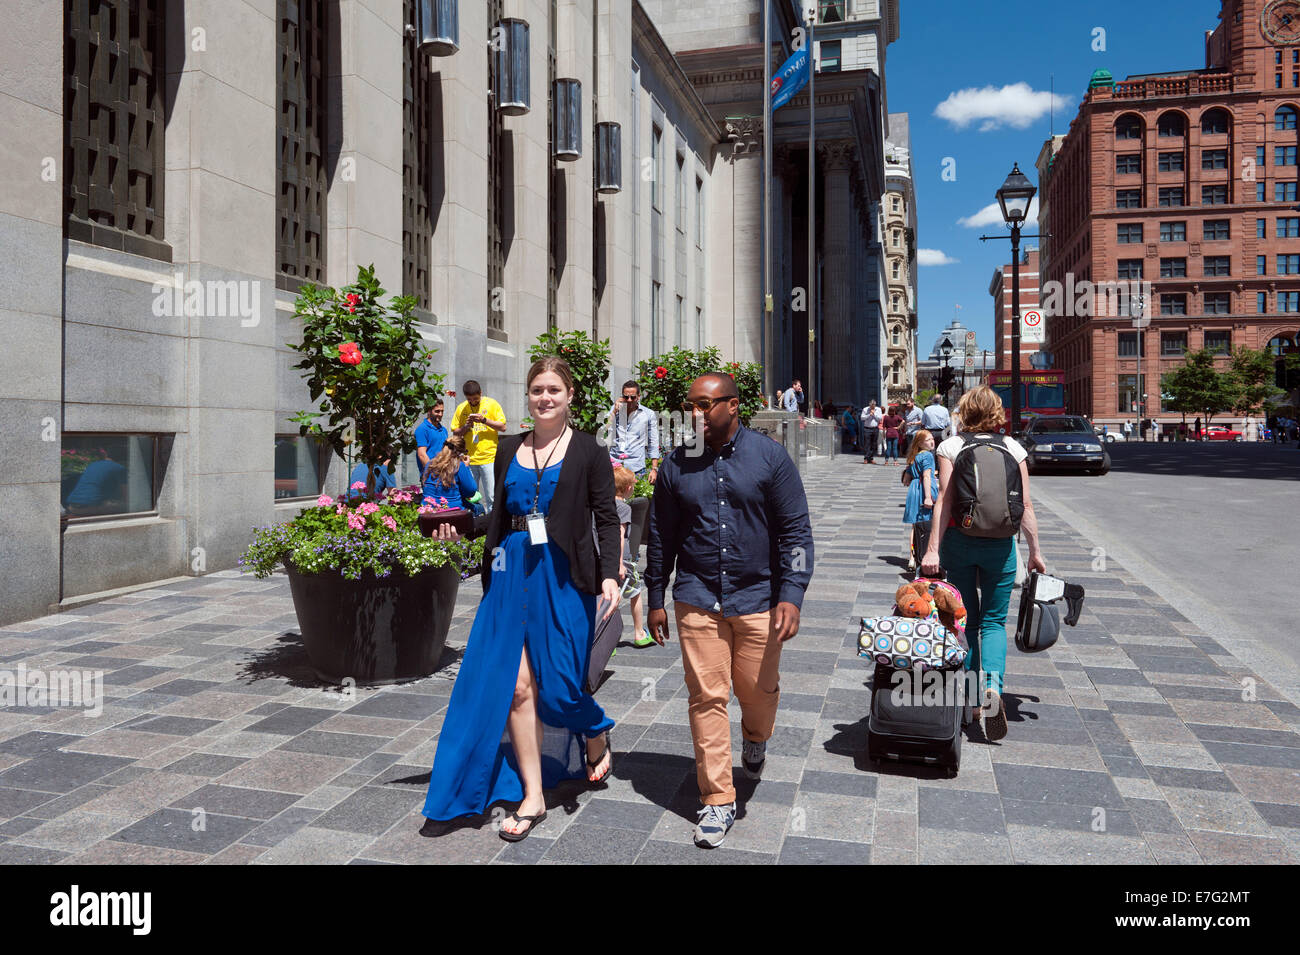 Pedestrians on St Jacques street, Old Montreal, province of Quebec, Canada. - Stock Image